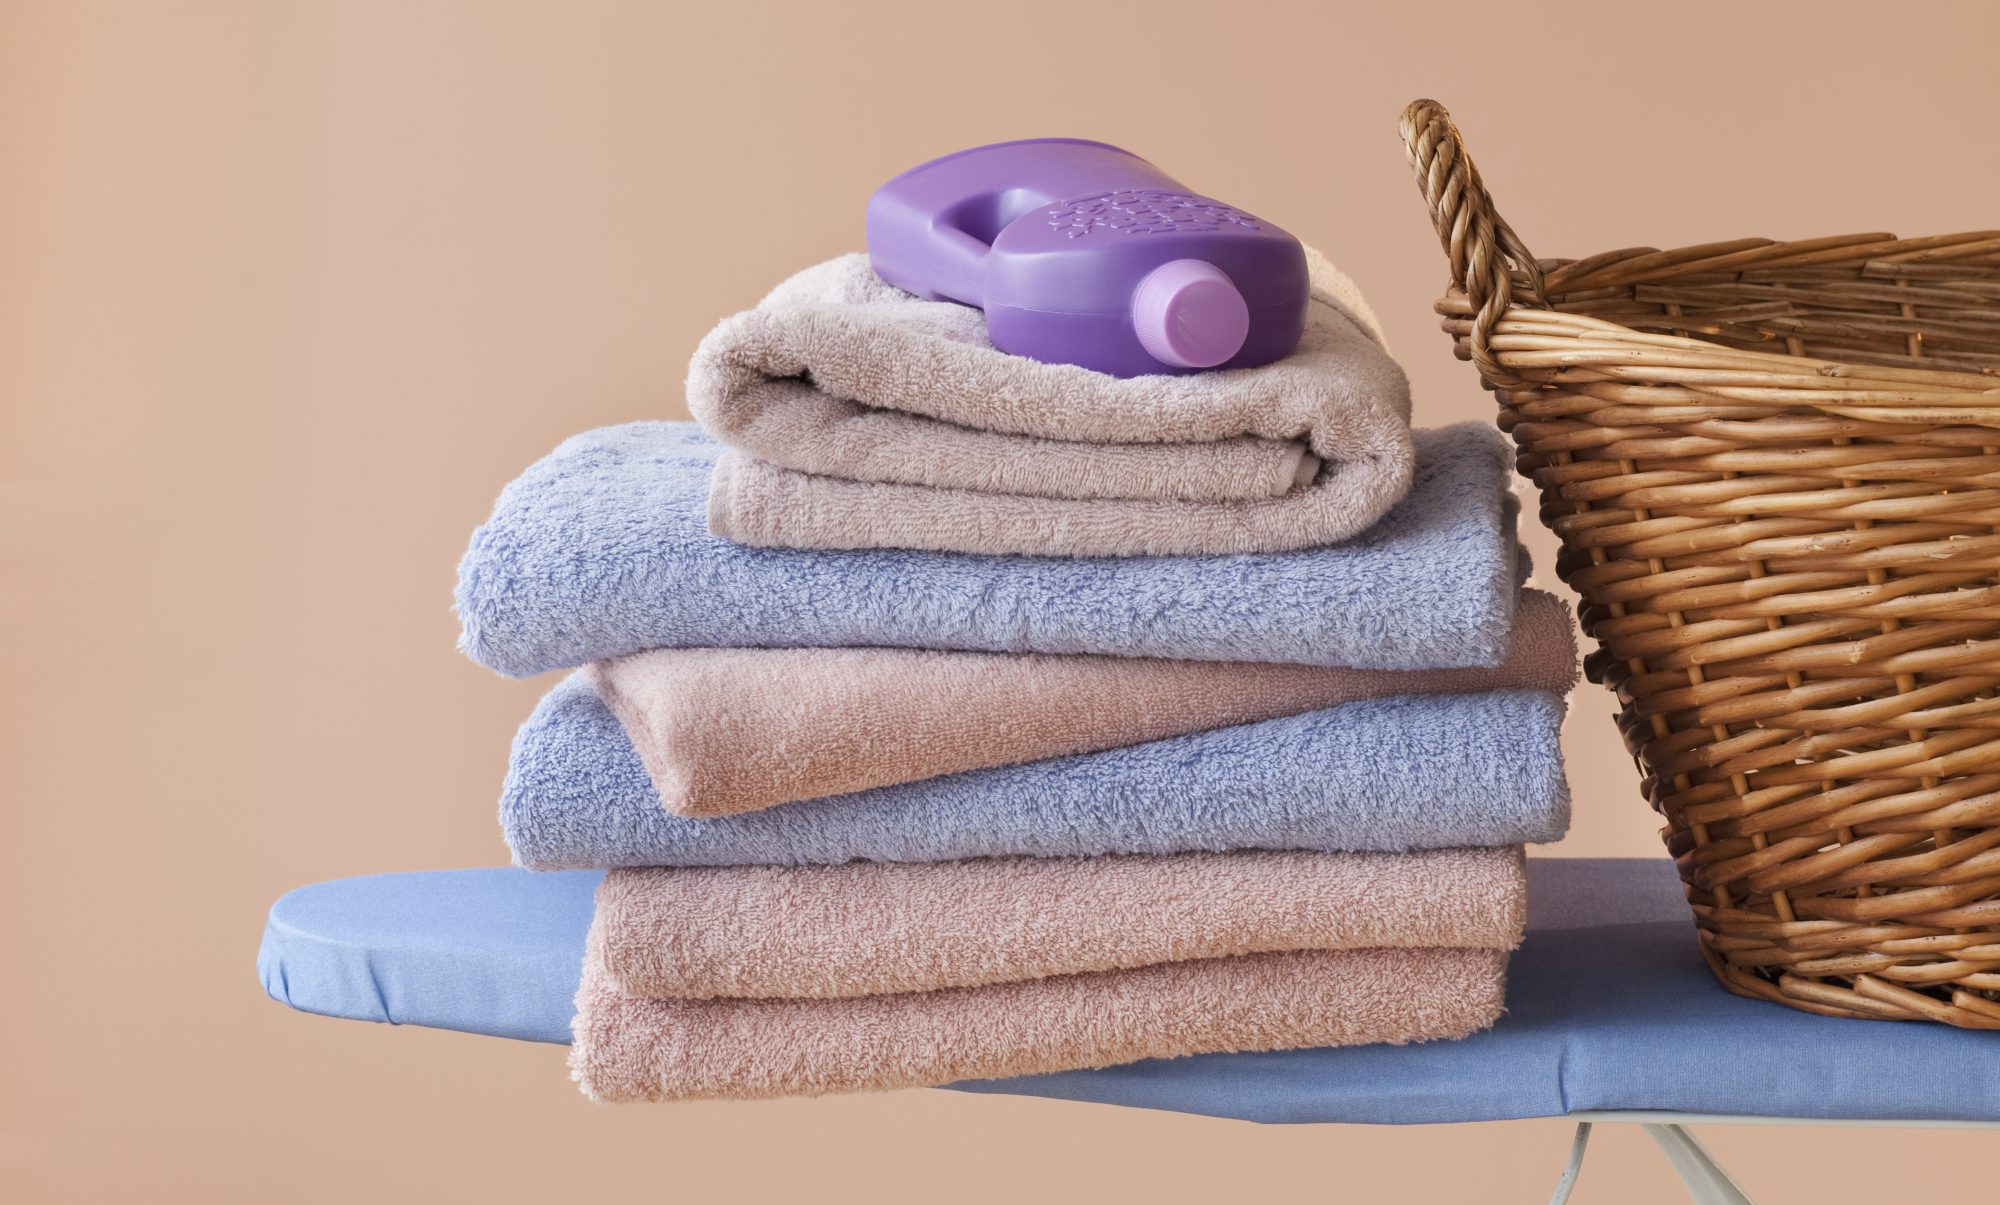 how-often-to-wash-towels: stack of folded towels and laundry basket